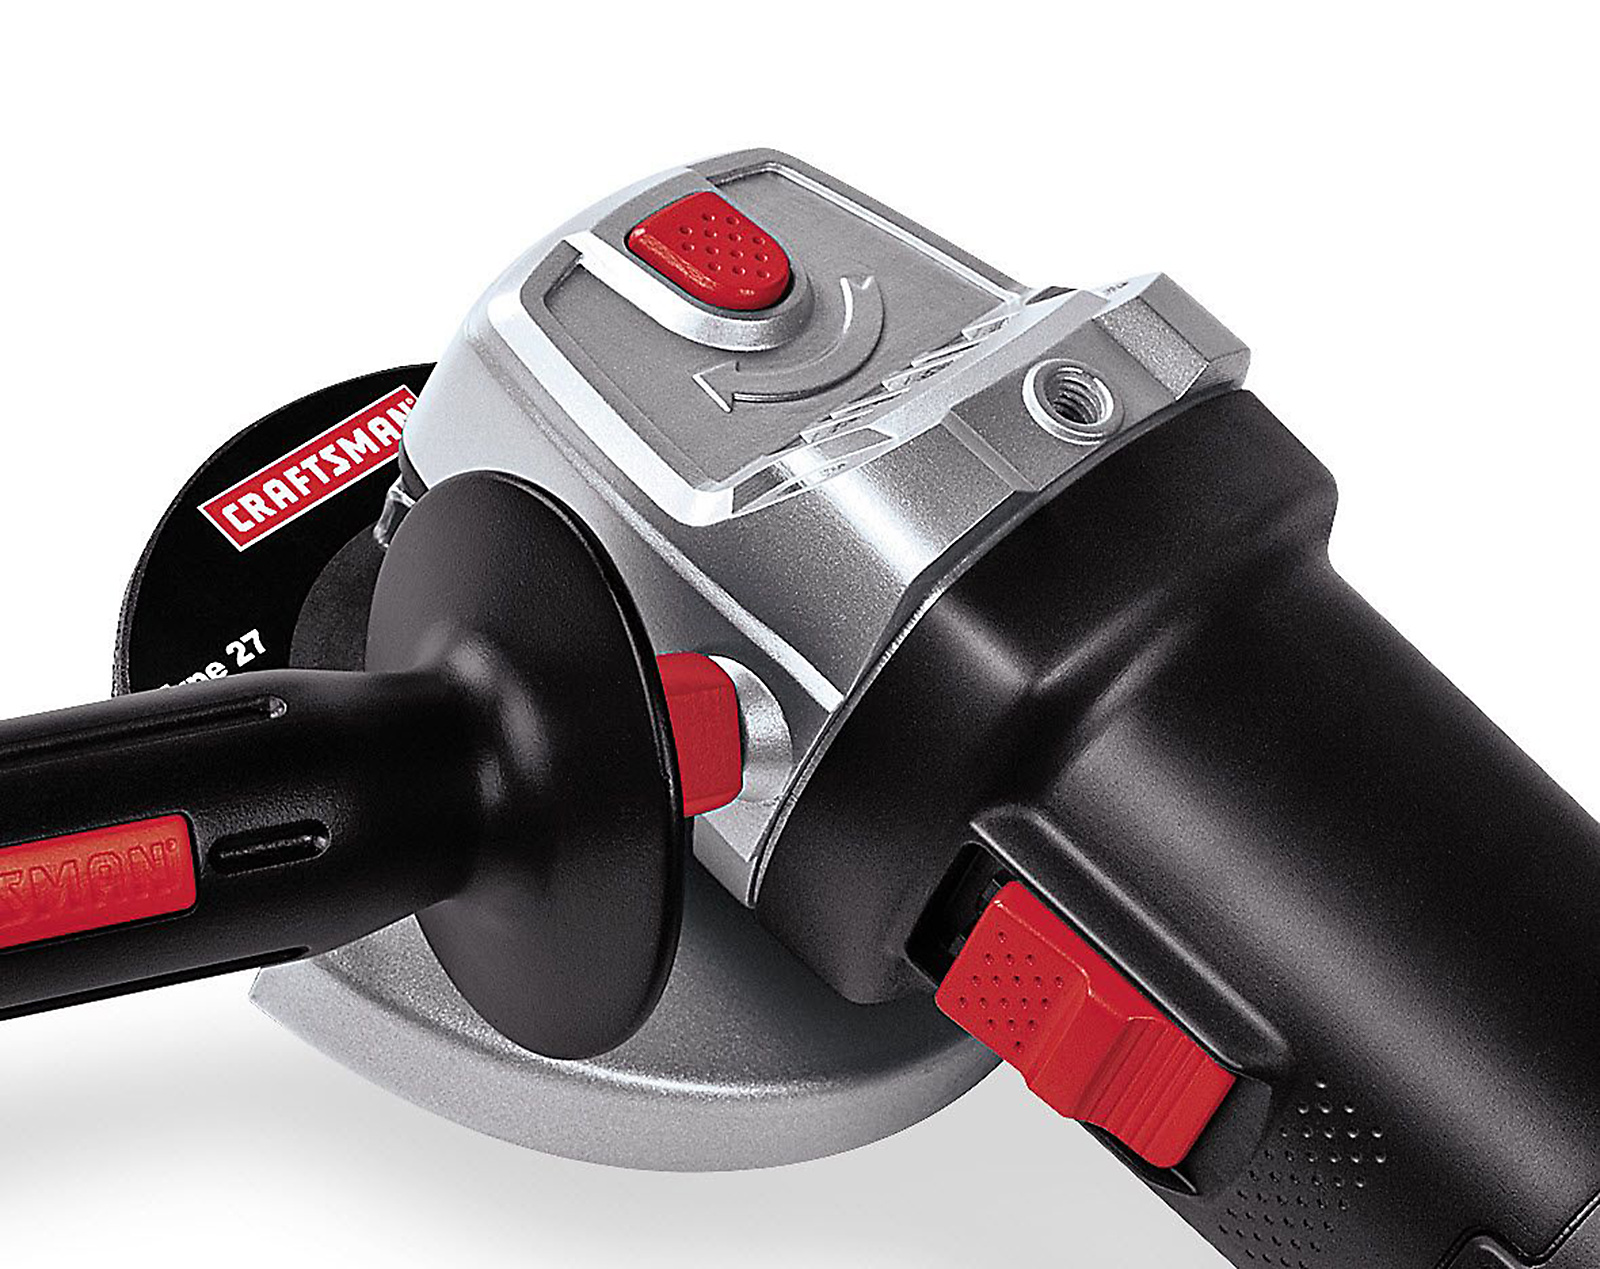 Craftsman 4 1/2 in. Small Angle Grinder